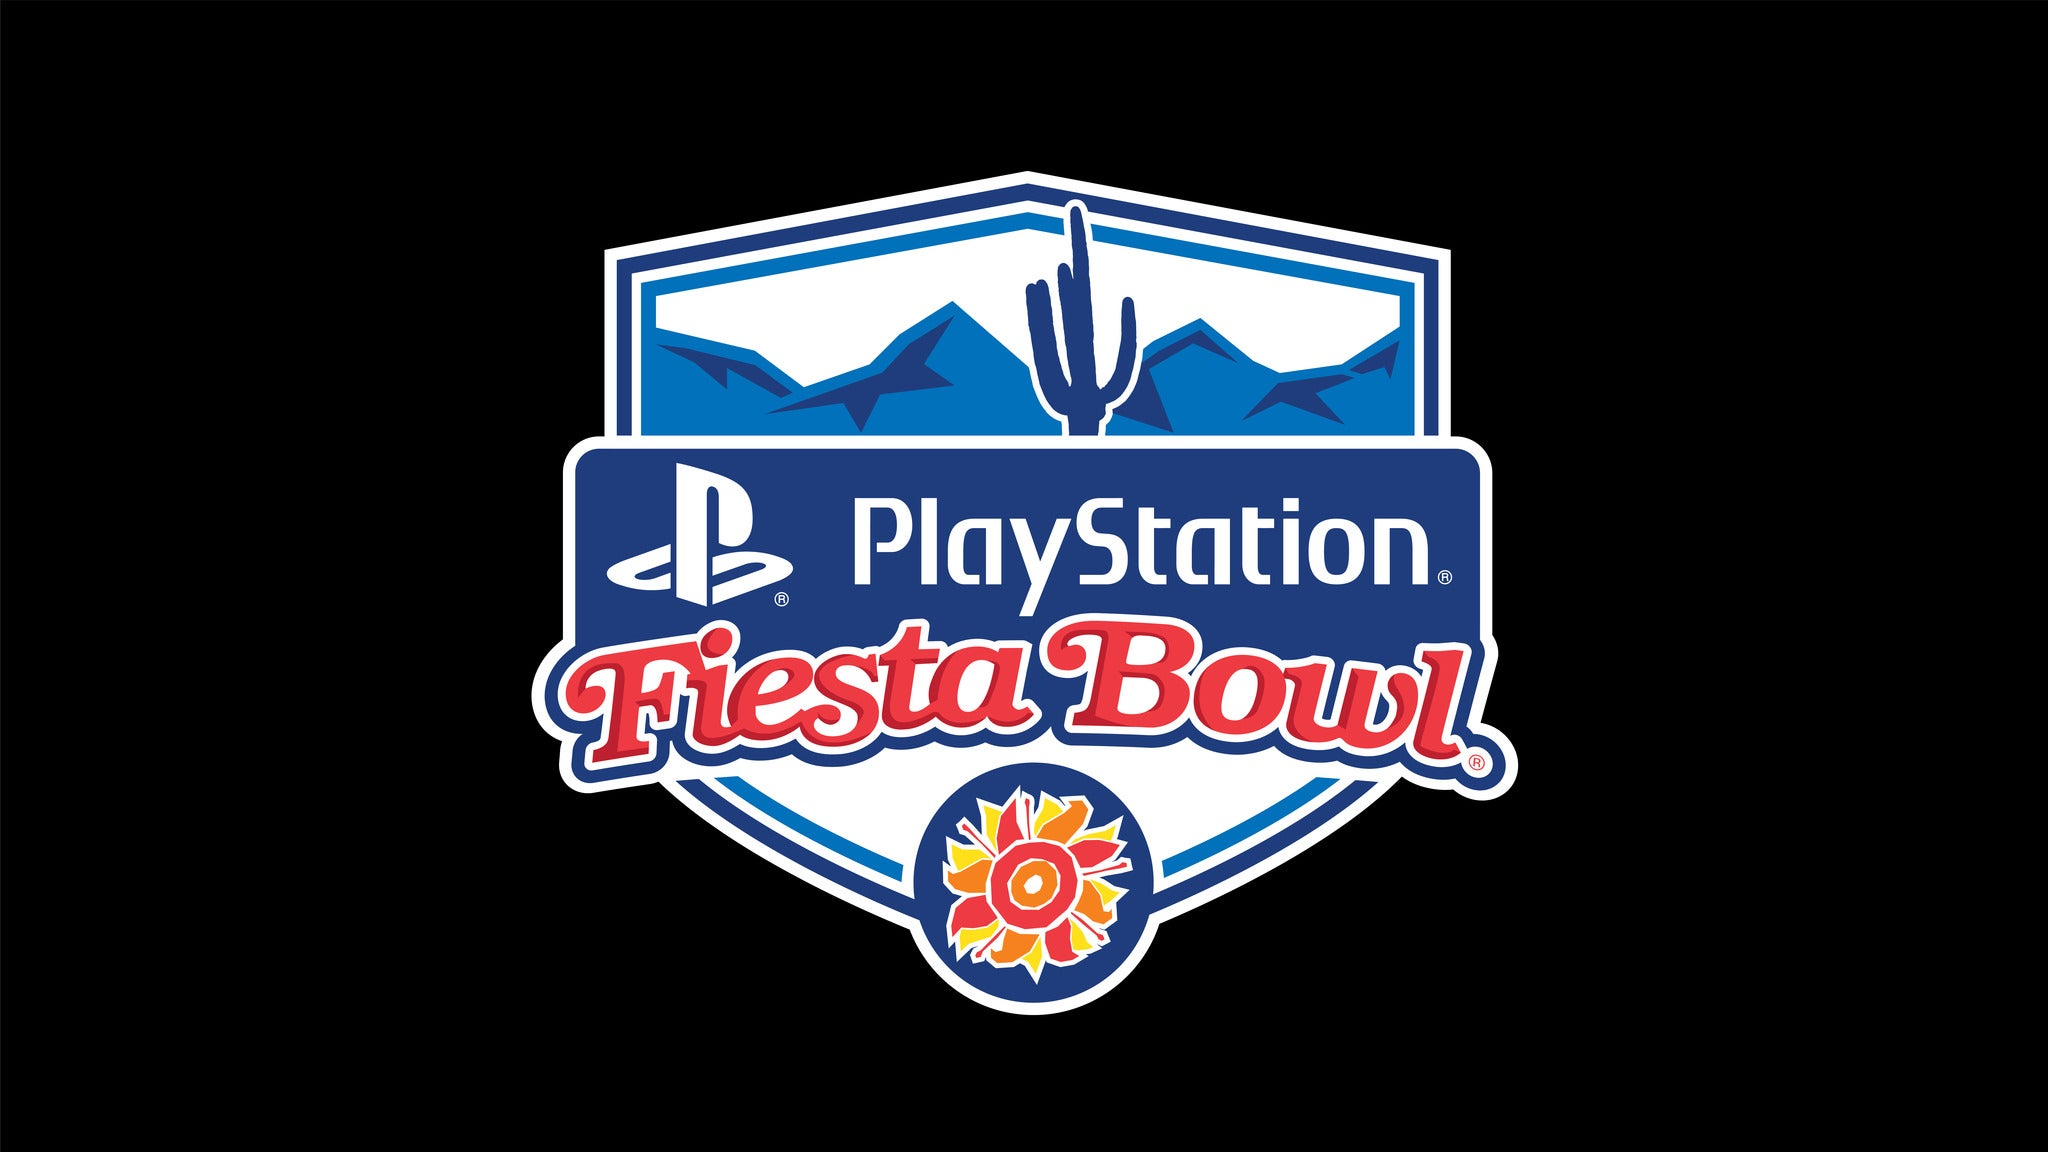 PlayStation Fiesta Bowl Travel Packages